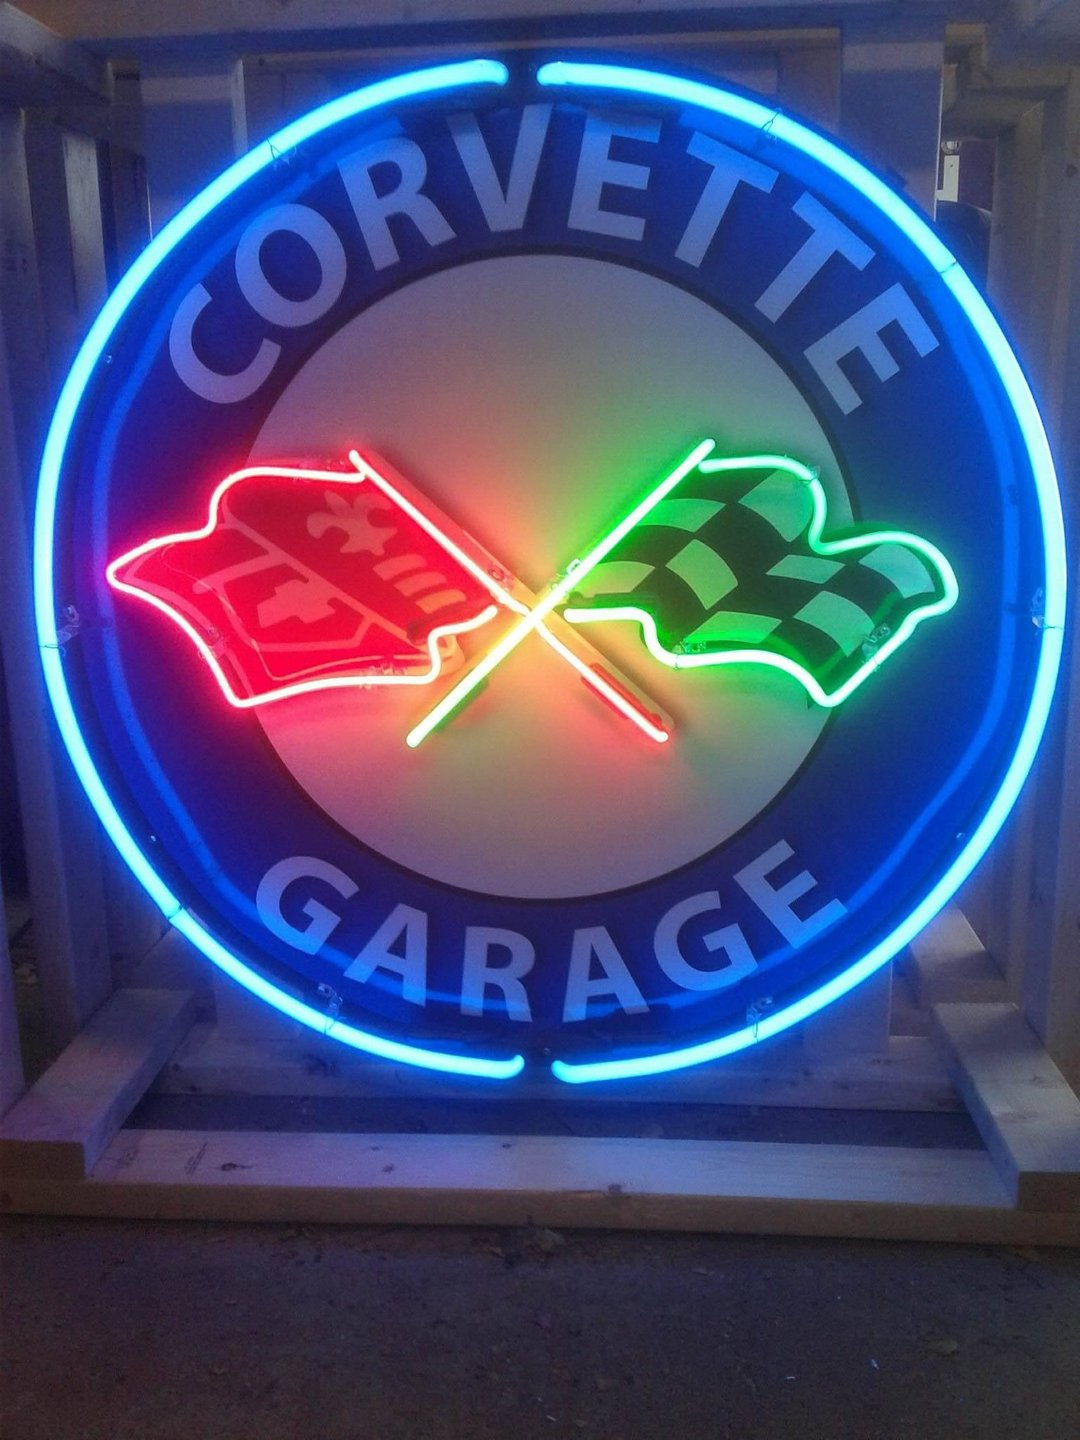 Corvette garage tin neon sign